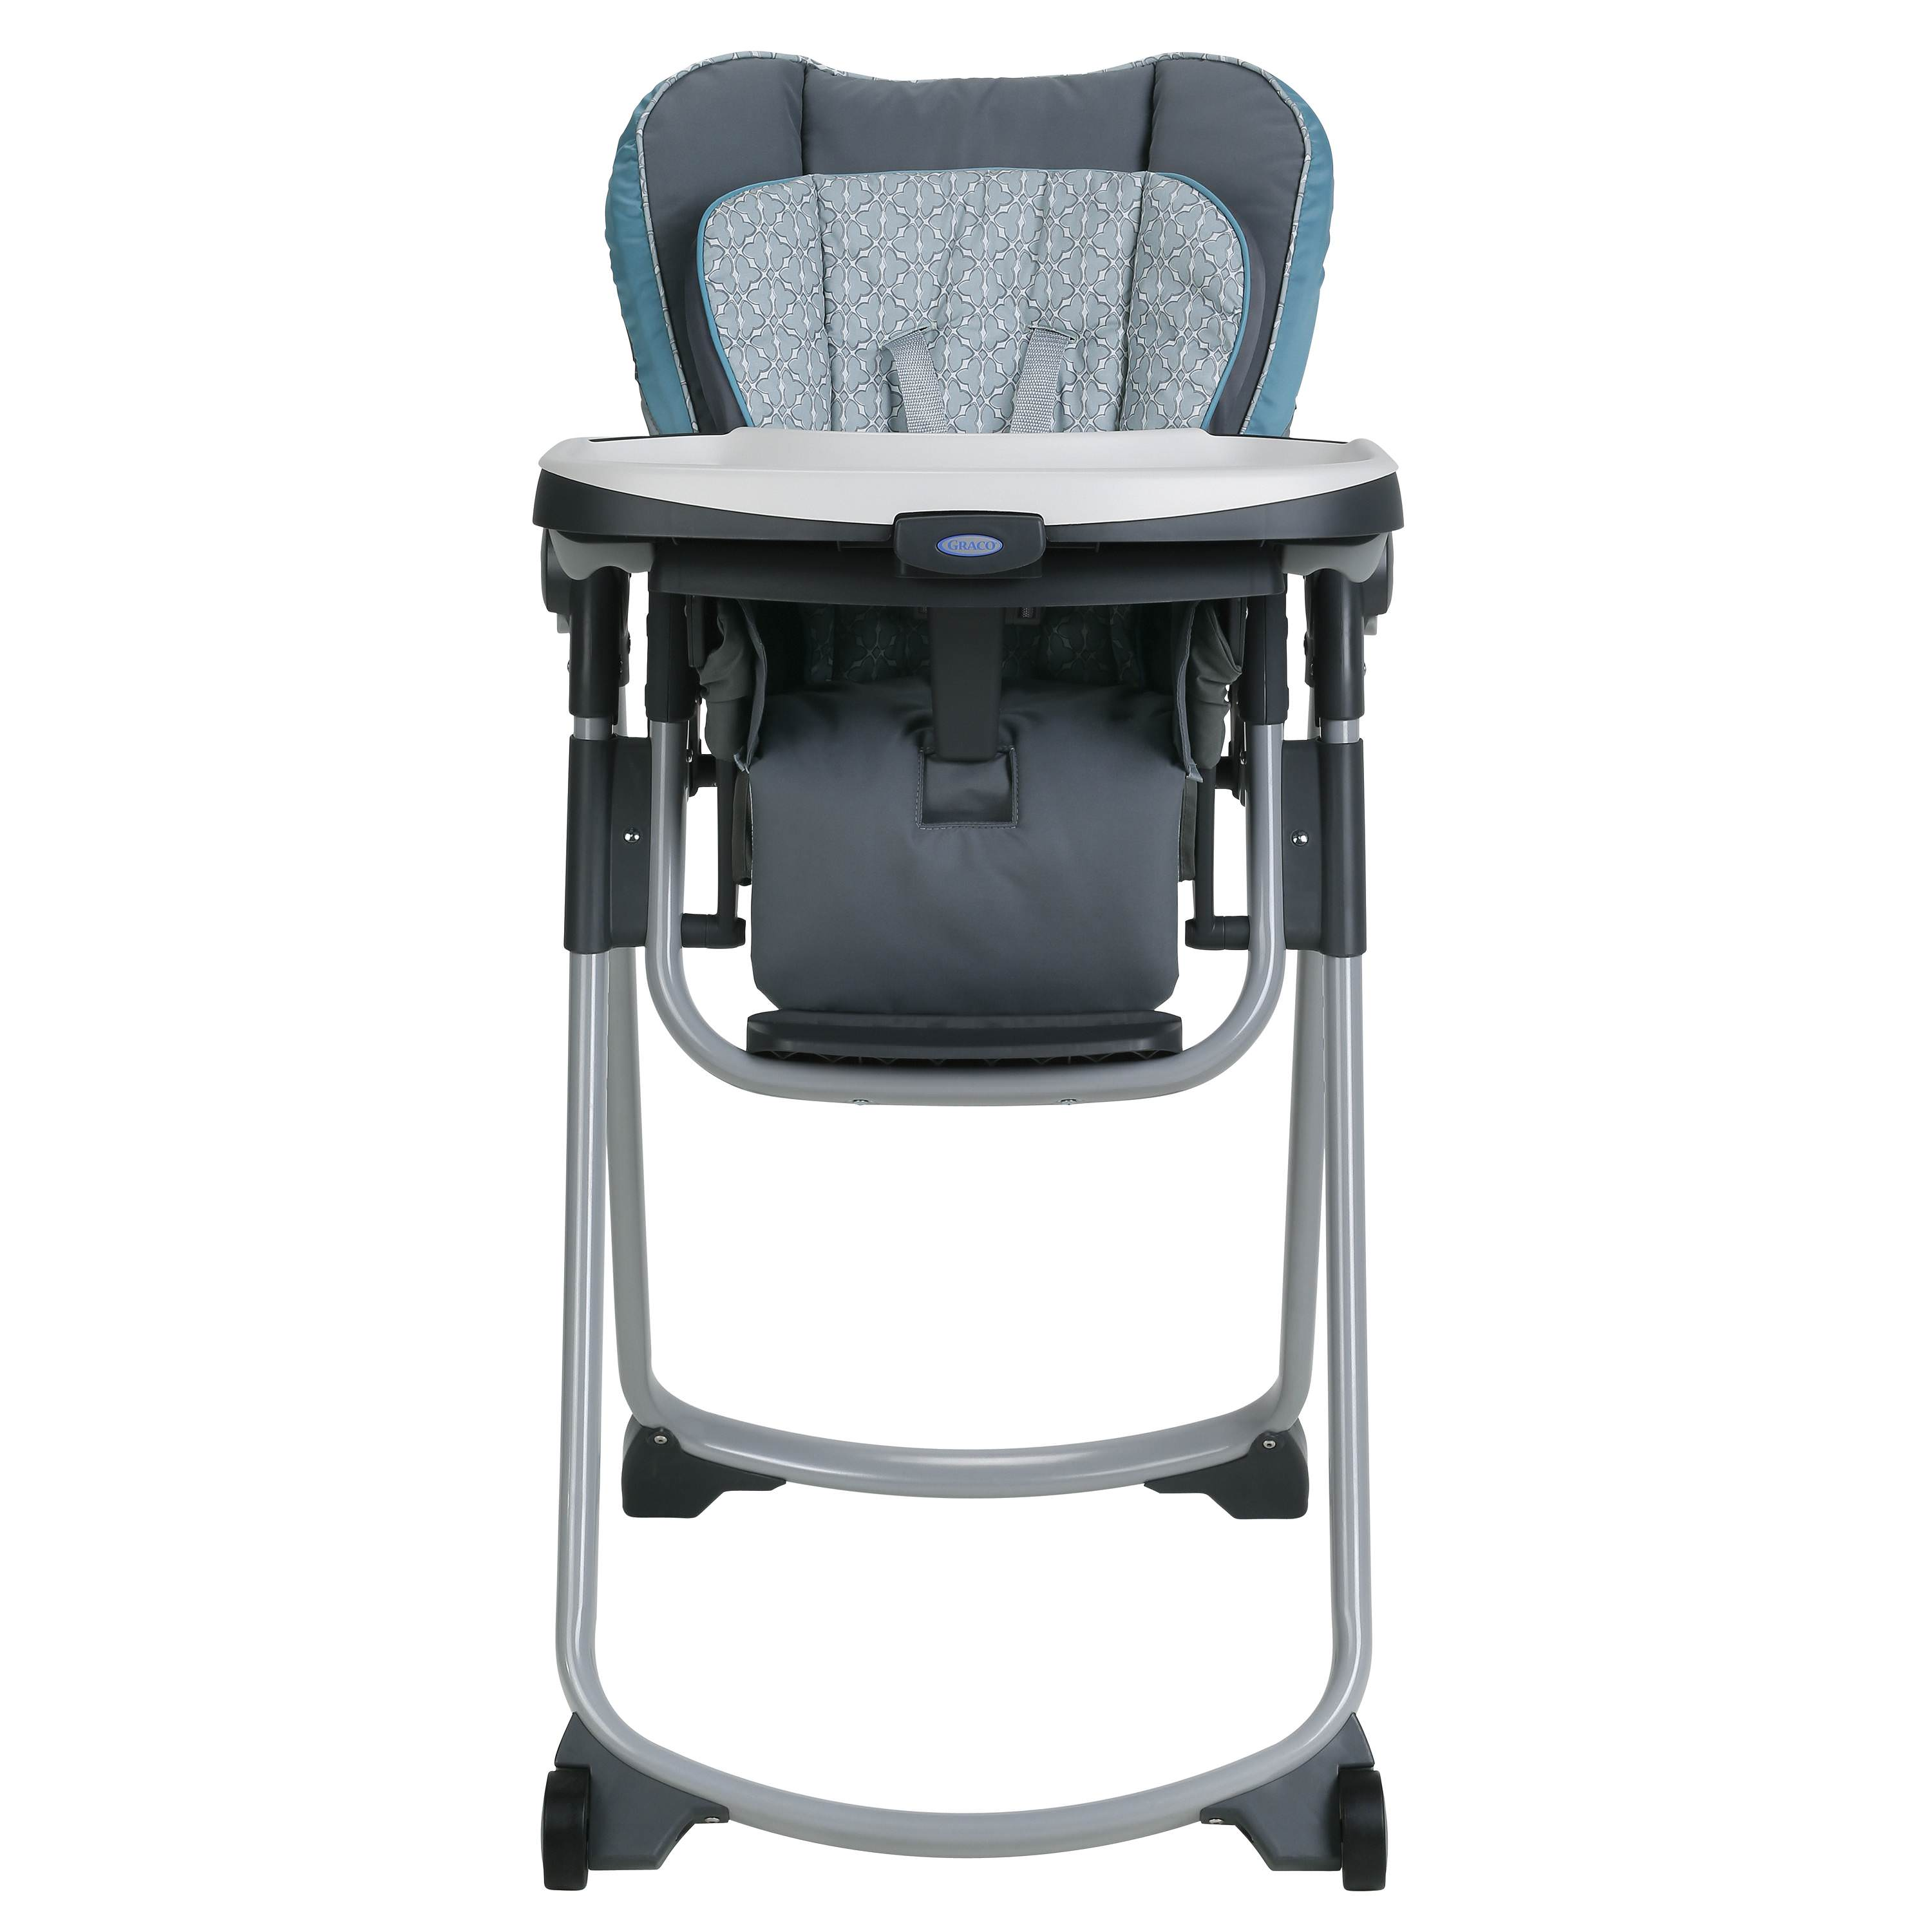 graco space saver high chair and ottoman covers amazon slim spaces manor walmart com